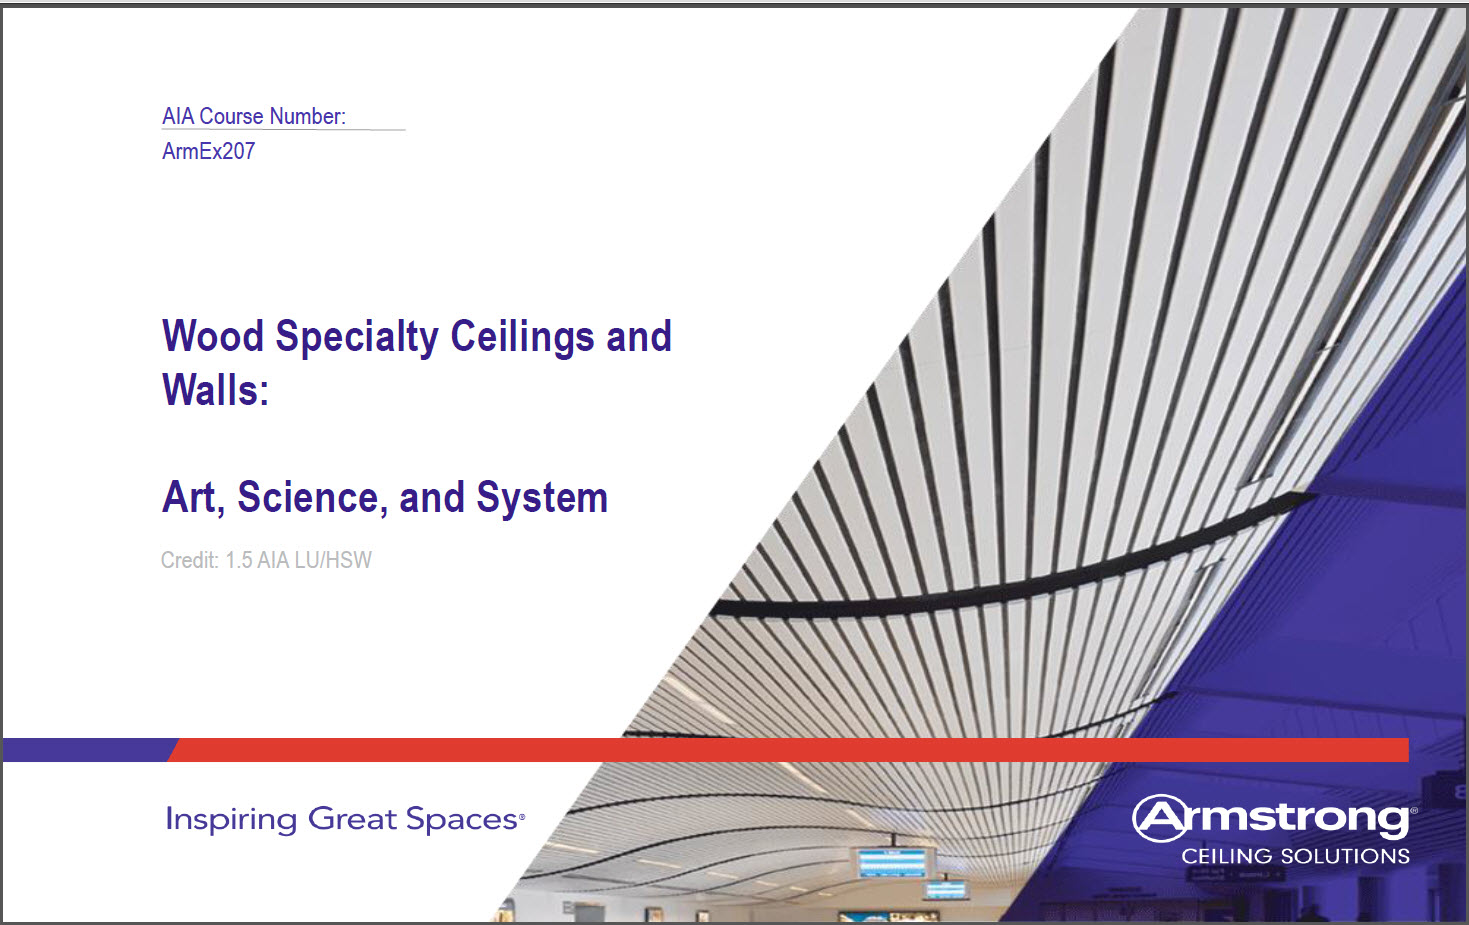 Wood Specialty Ceilings and Walls CEU Course Cover